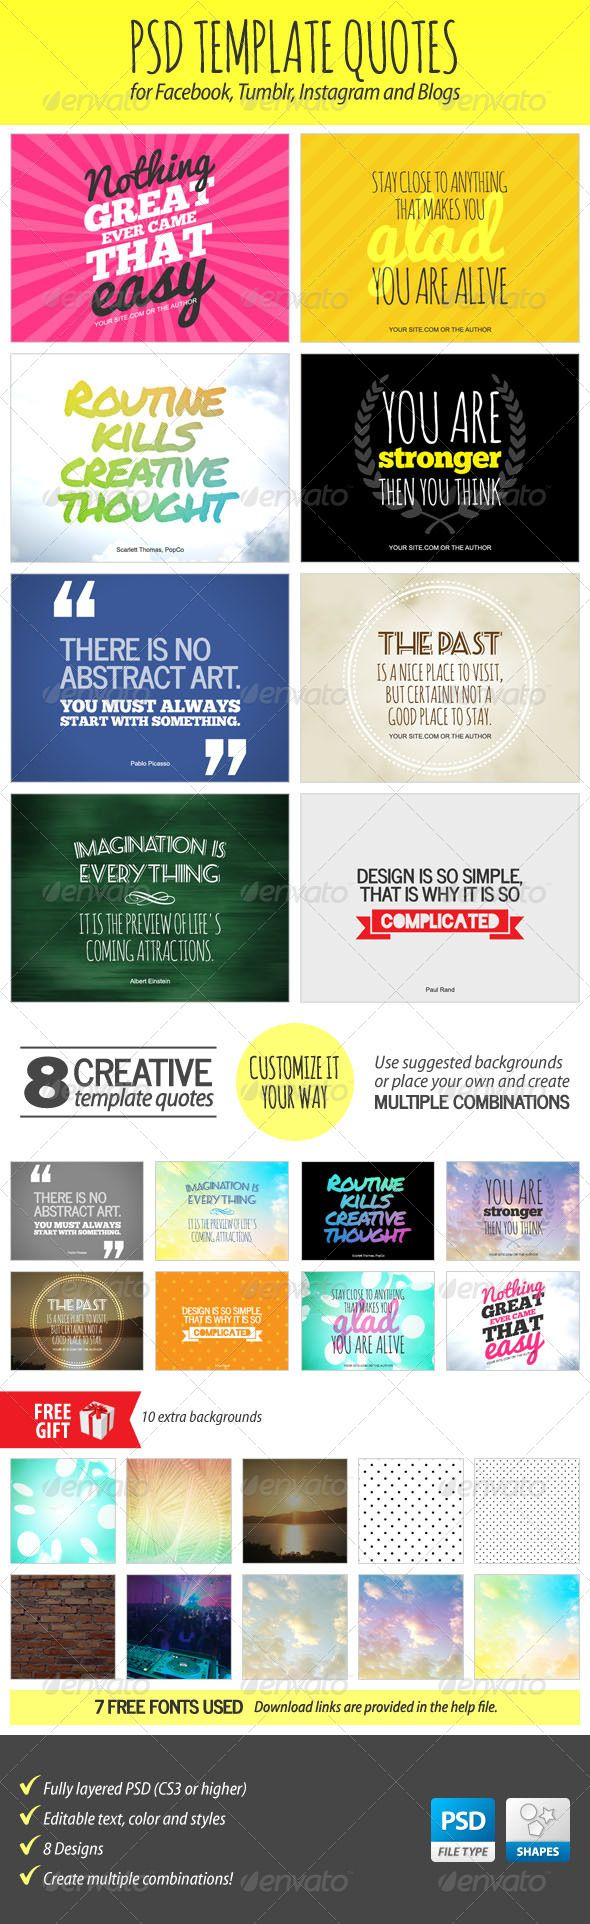 PSD Template Quotes | Psd templates, Web banners and Template